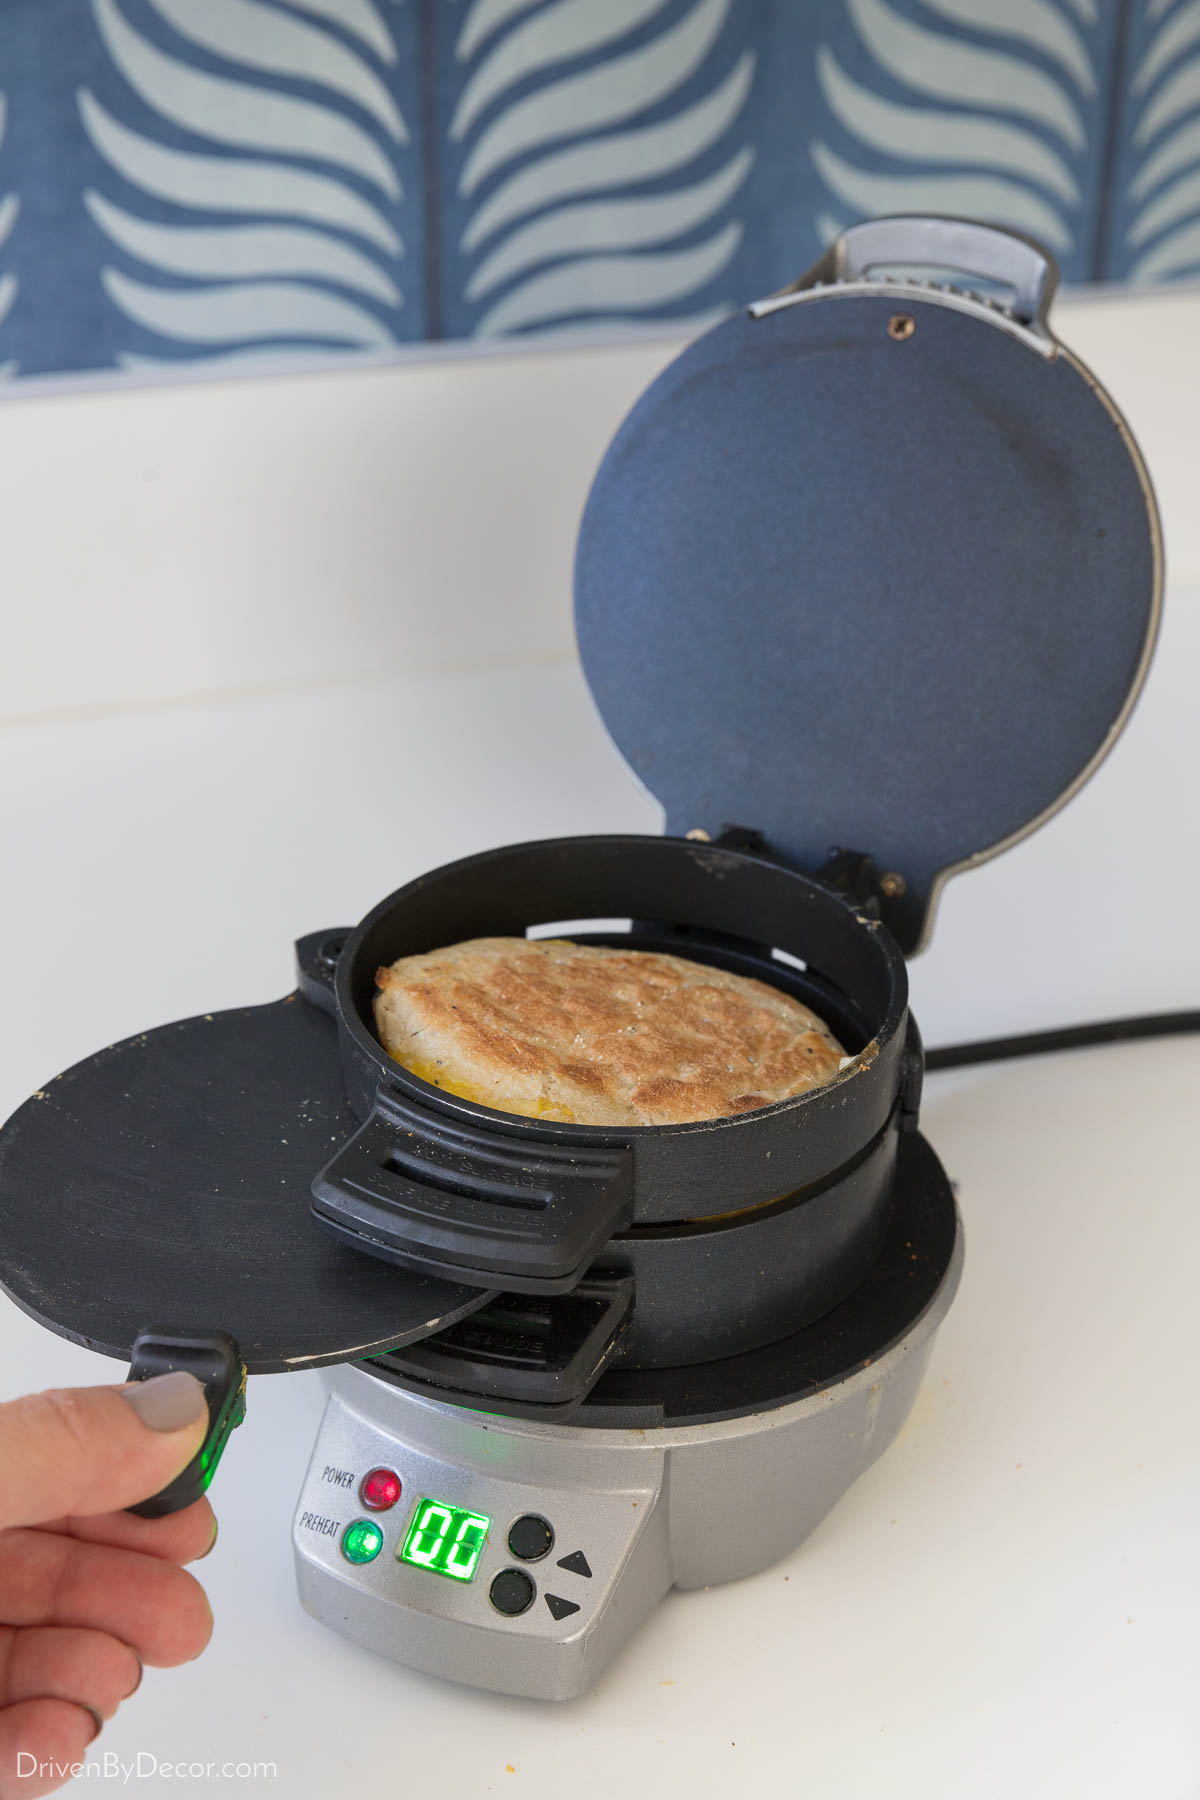 A favorite small kitchen appliance that takes up hardly any cupboard space!